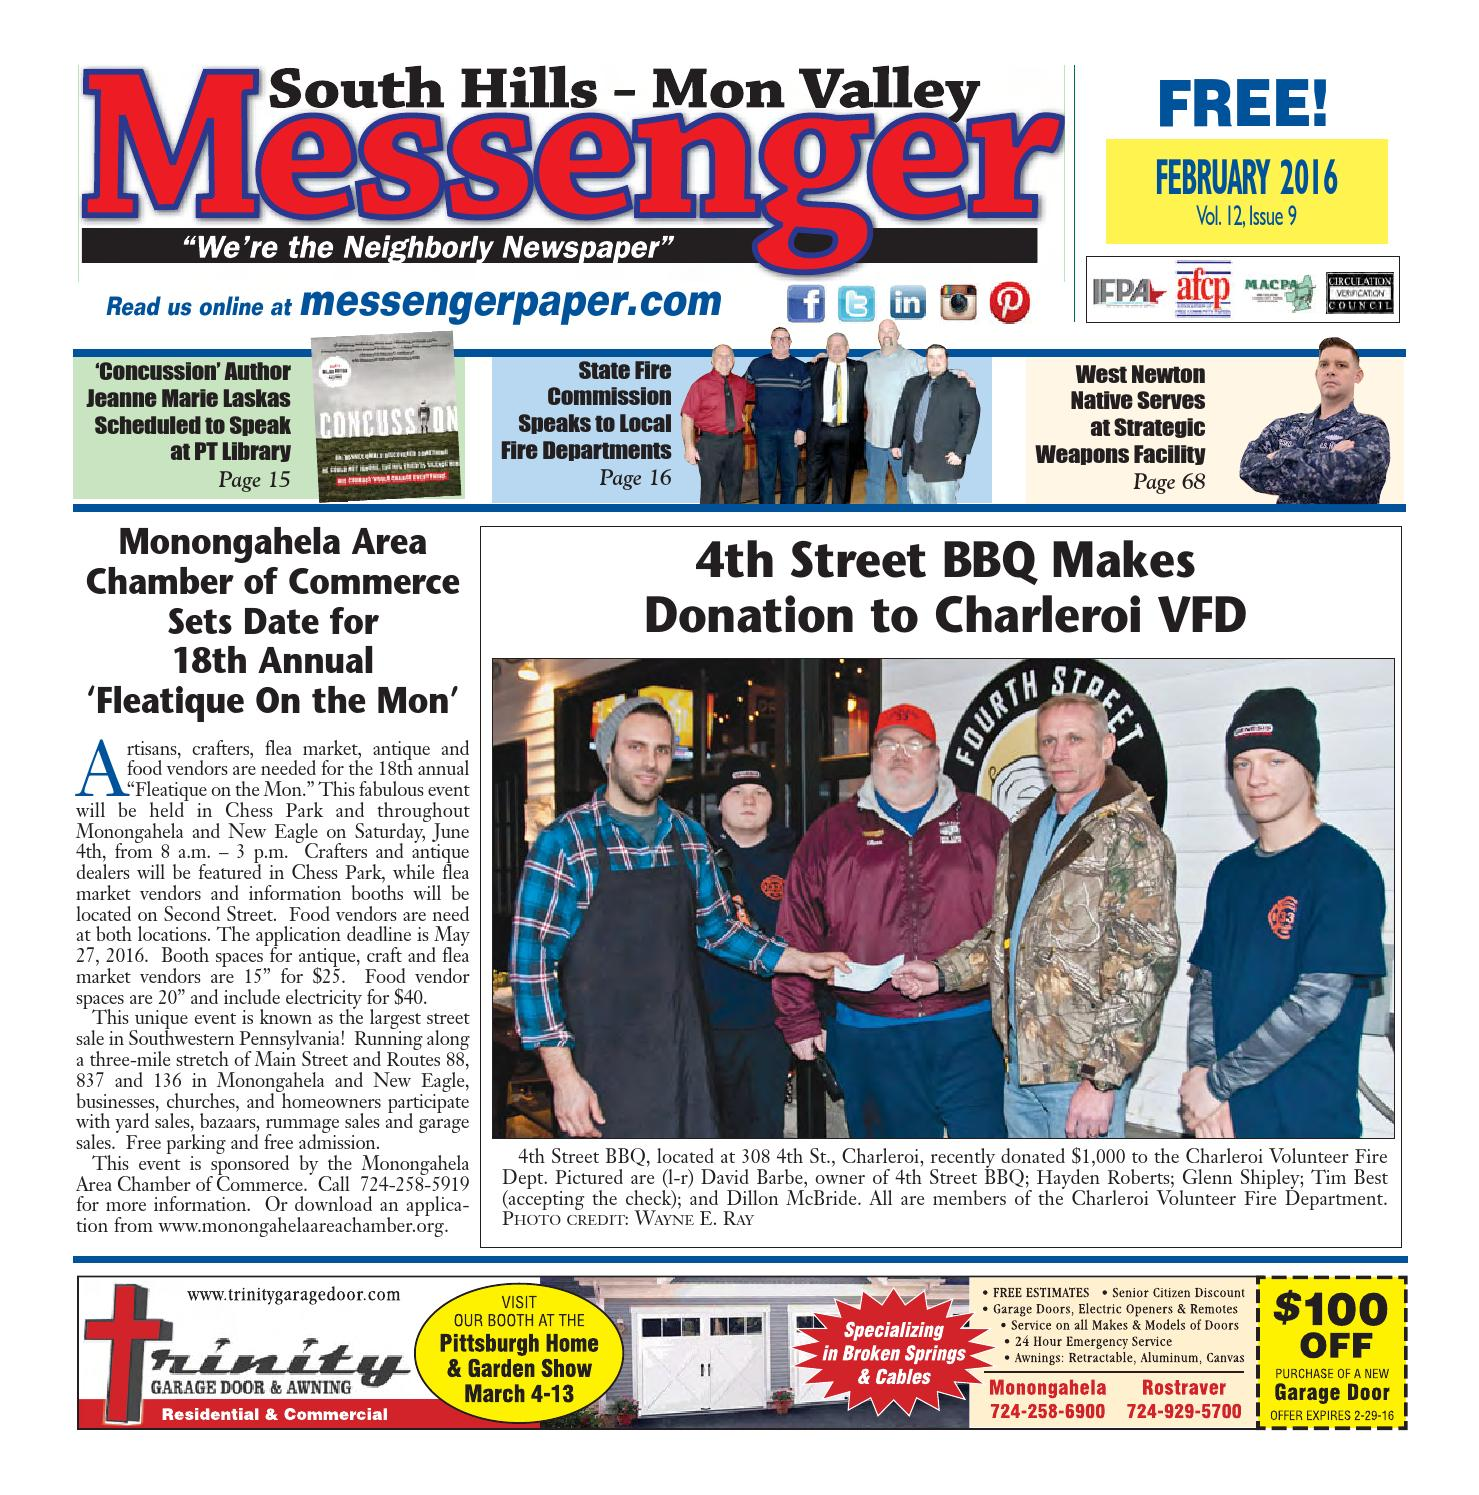 South Hills Mon Valley Messenger February 2016 By South Hills Mon